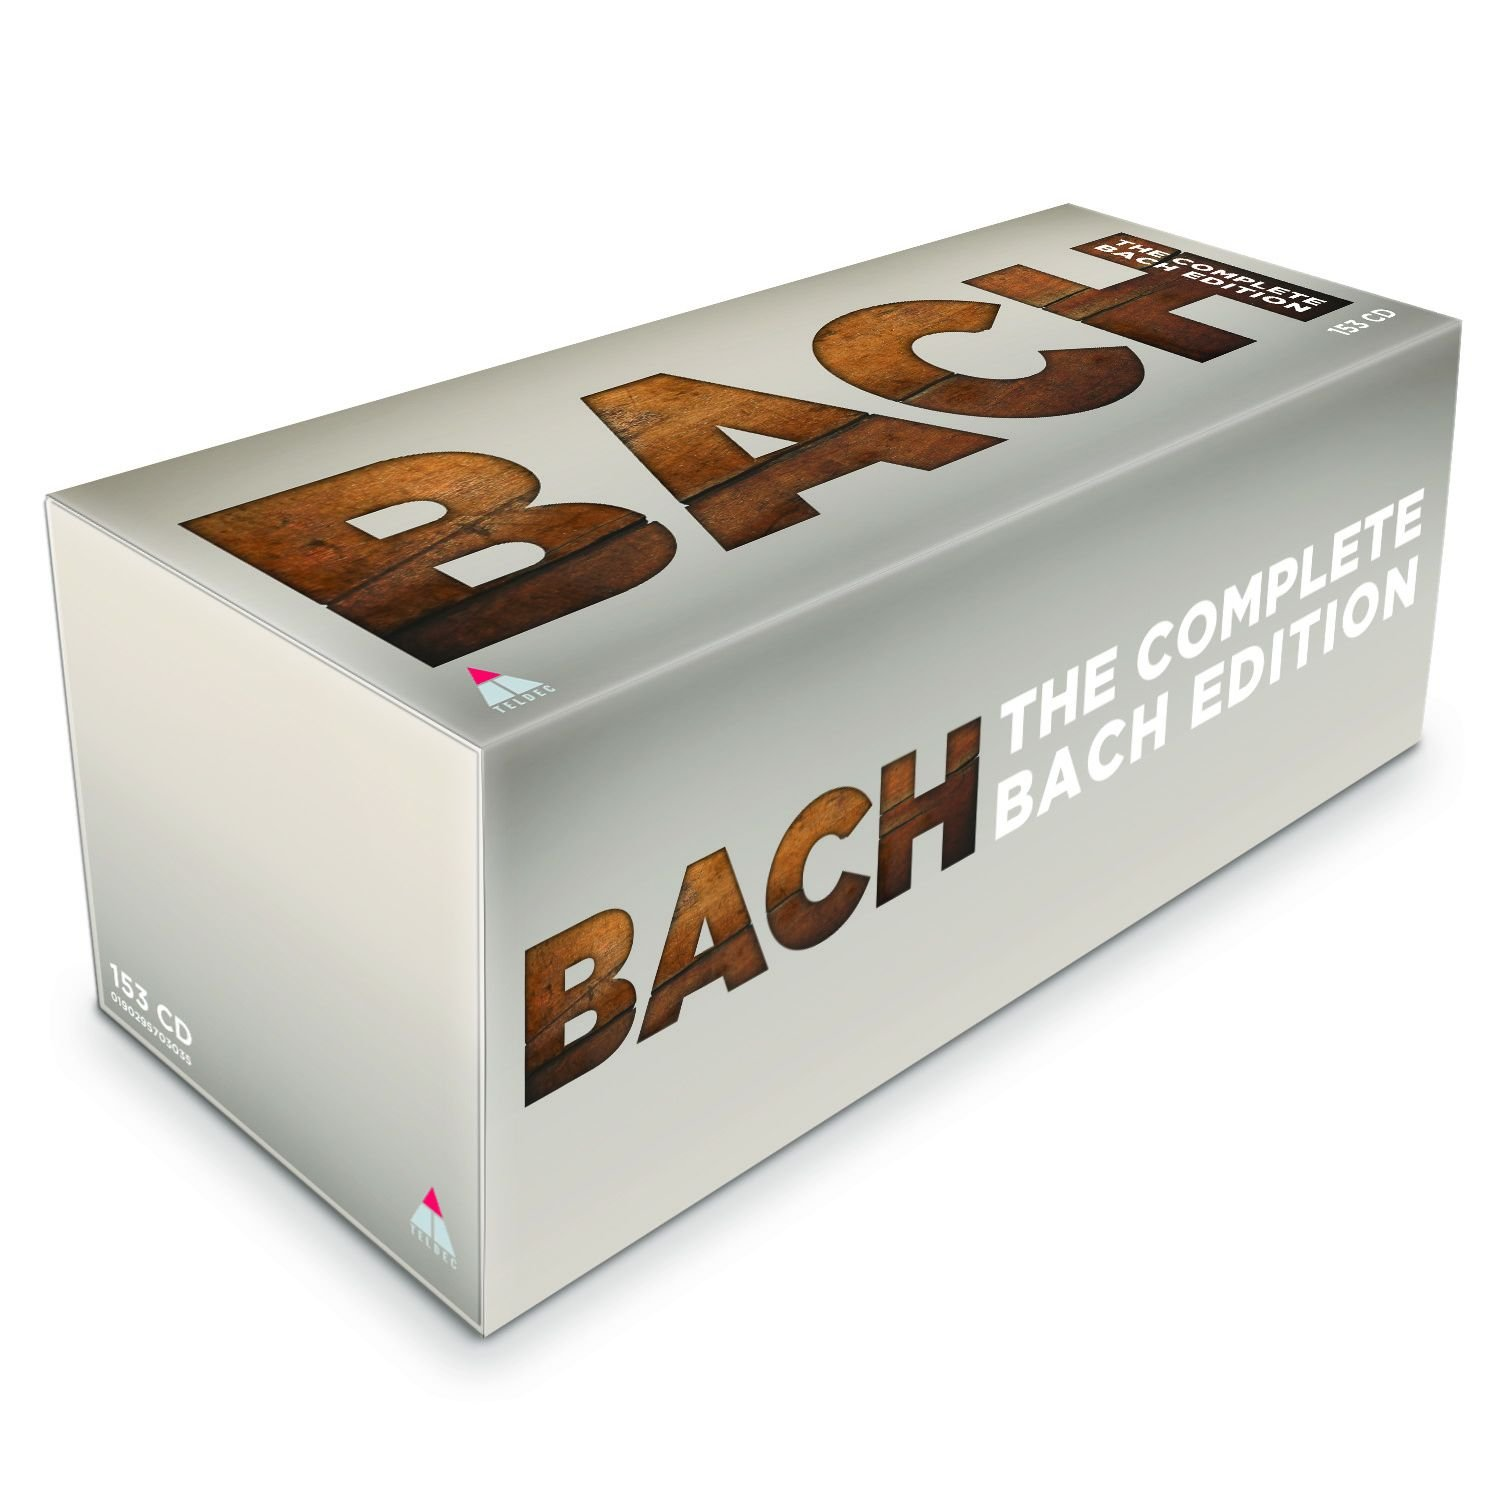 CD : J.S. Bach - Complete Bach Edition 2018 (Boxed Set, O-Card Packaging, 153PC)